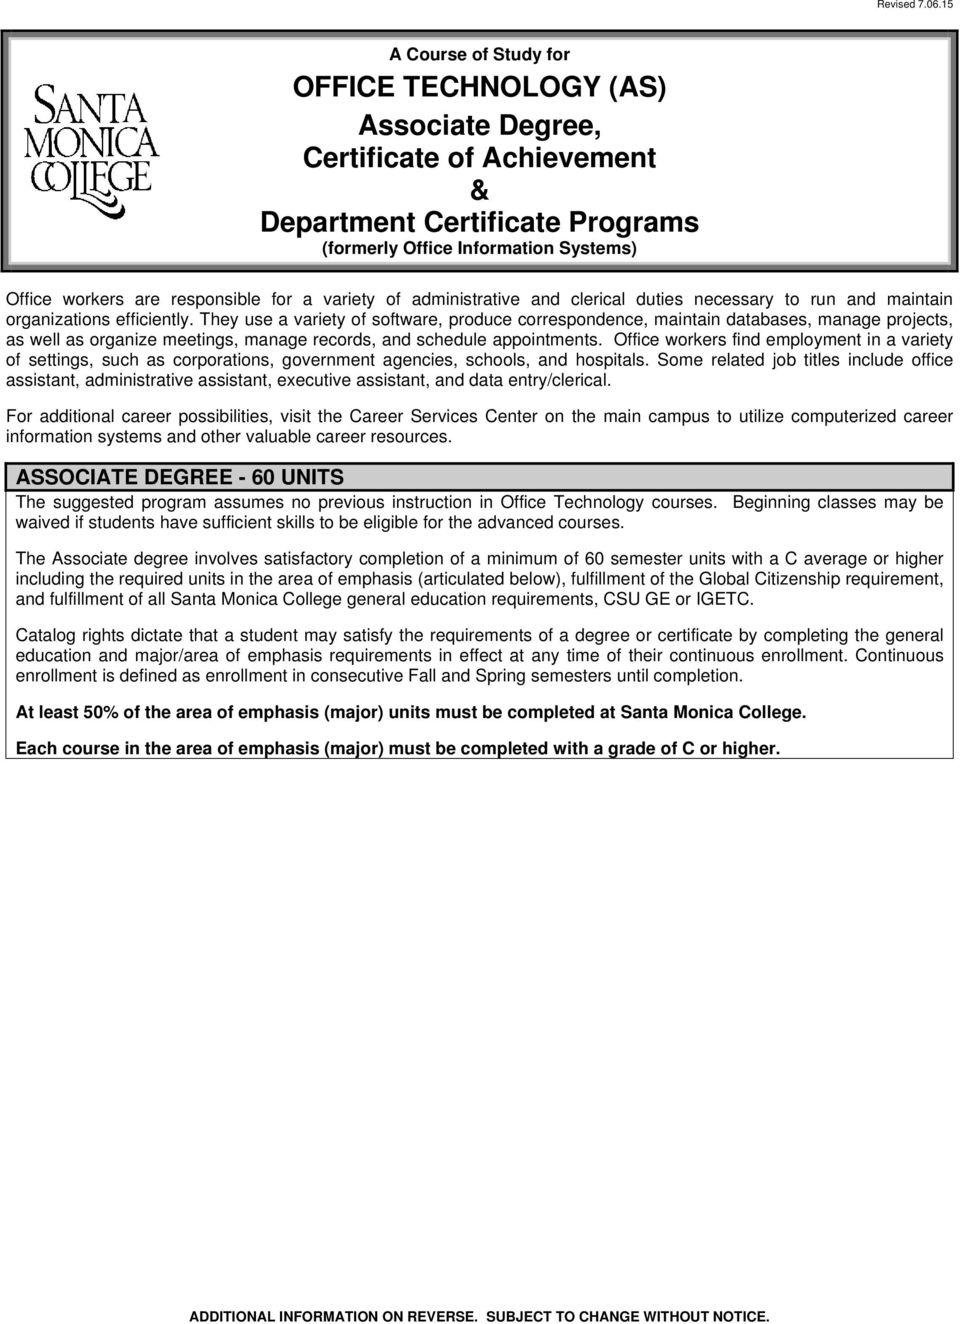 office technology (as) associate degree, certificate of achievement